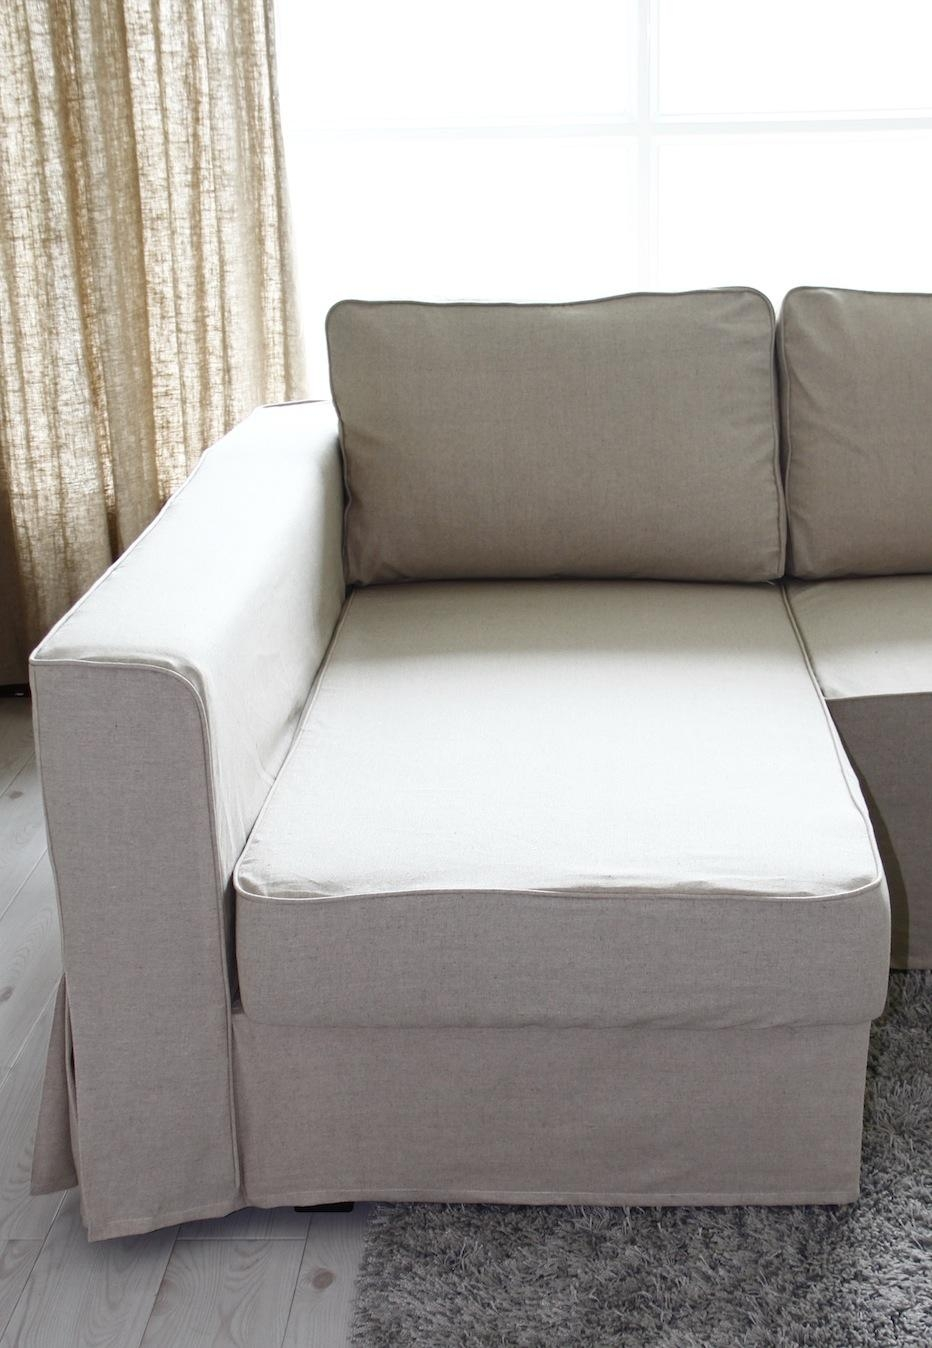 Furniture & Rug: Slipcovers For Sofas With Cushions Separate In Armless Slipcovers (Image 5 of 20)